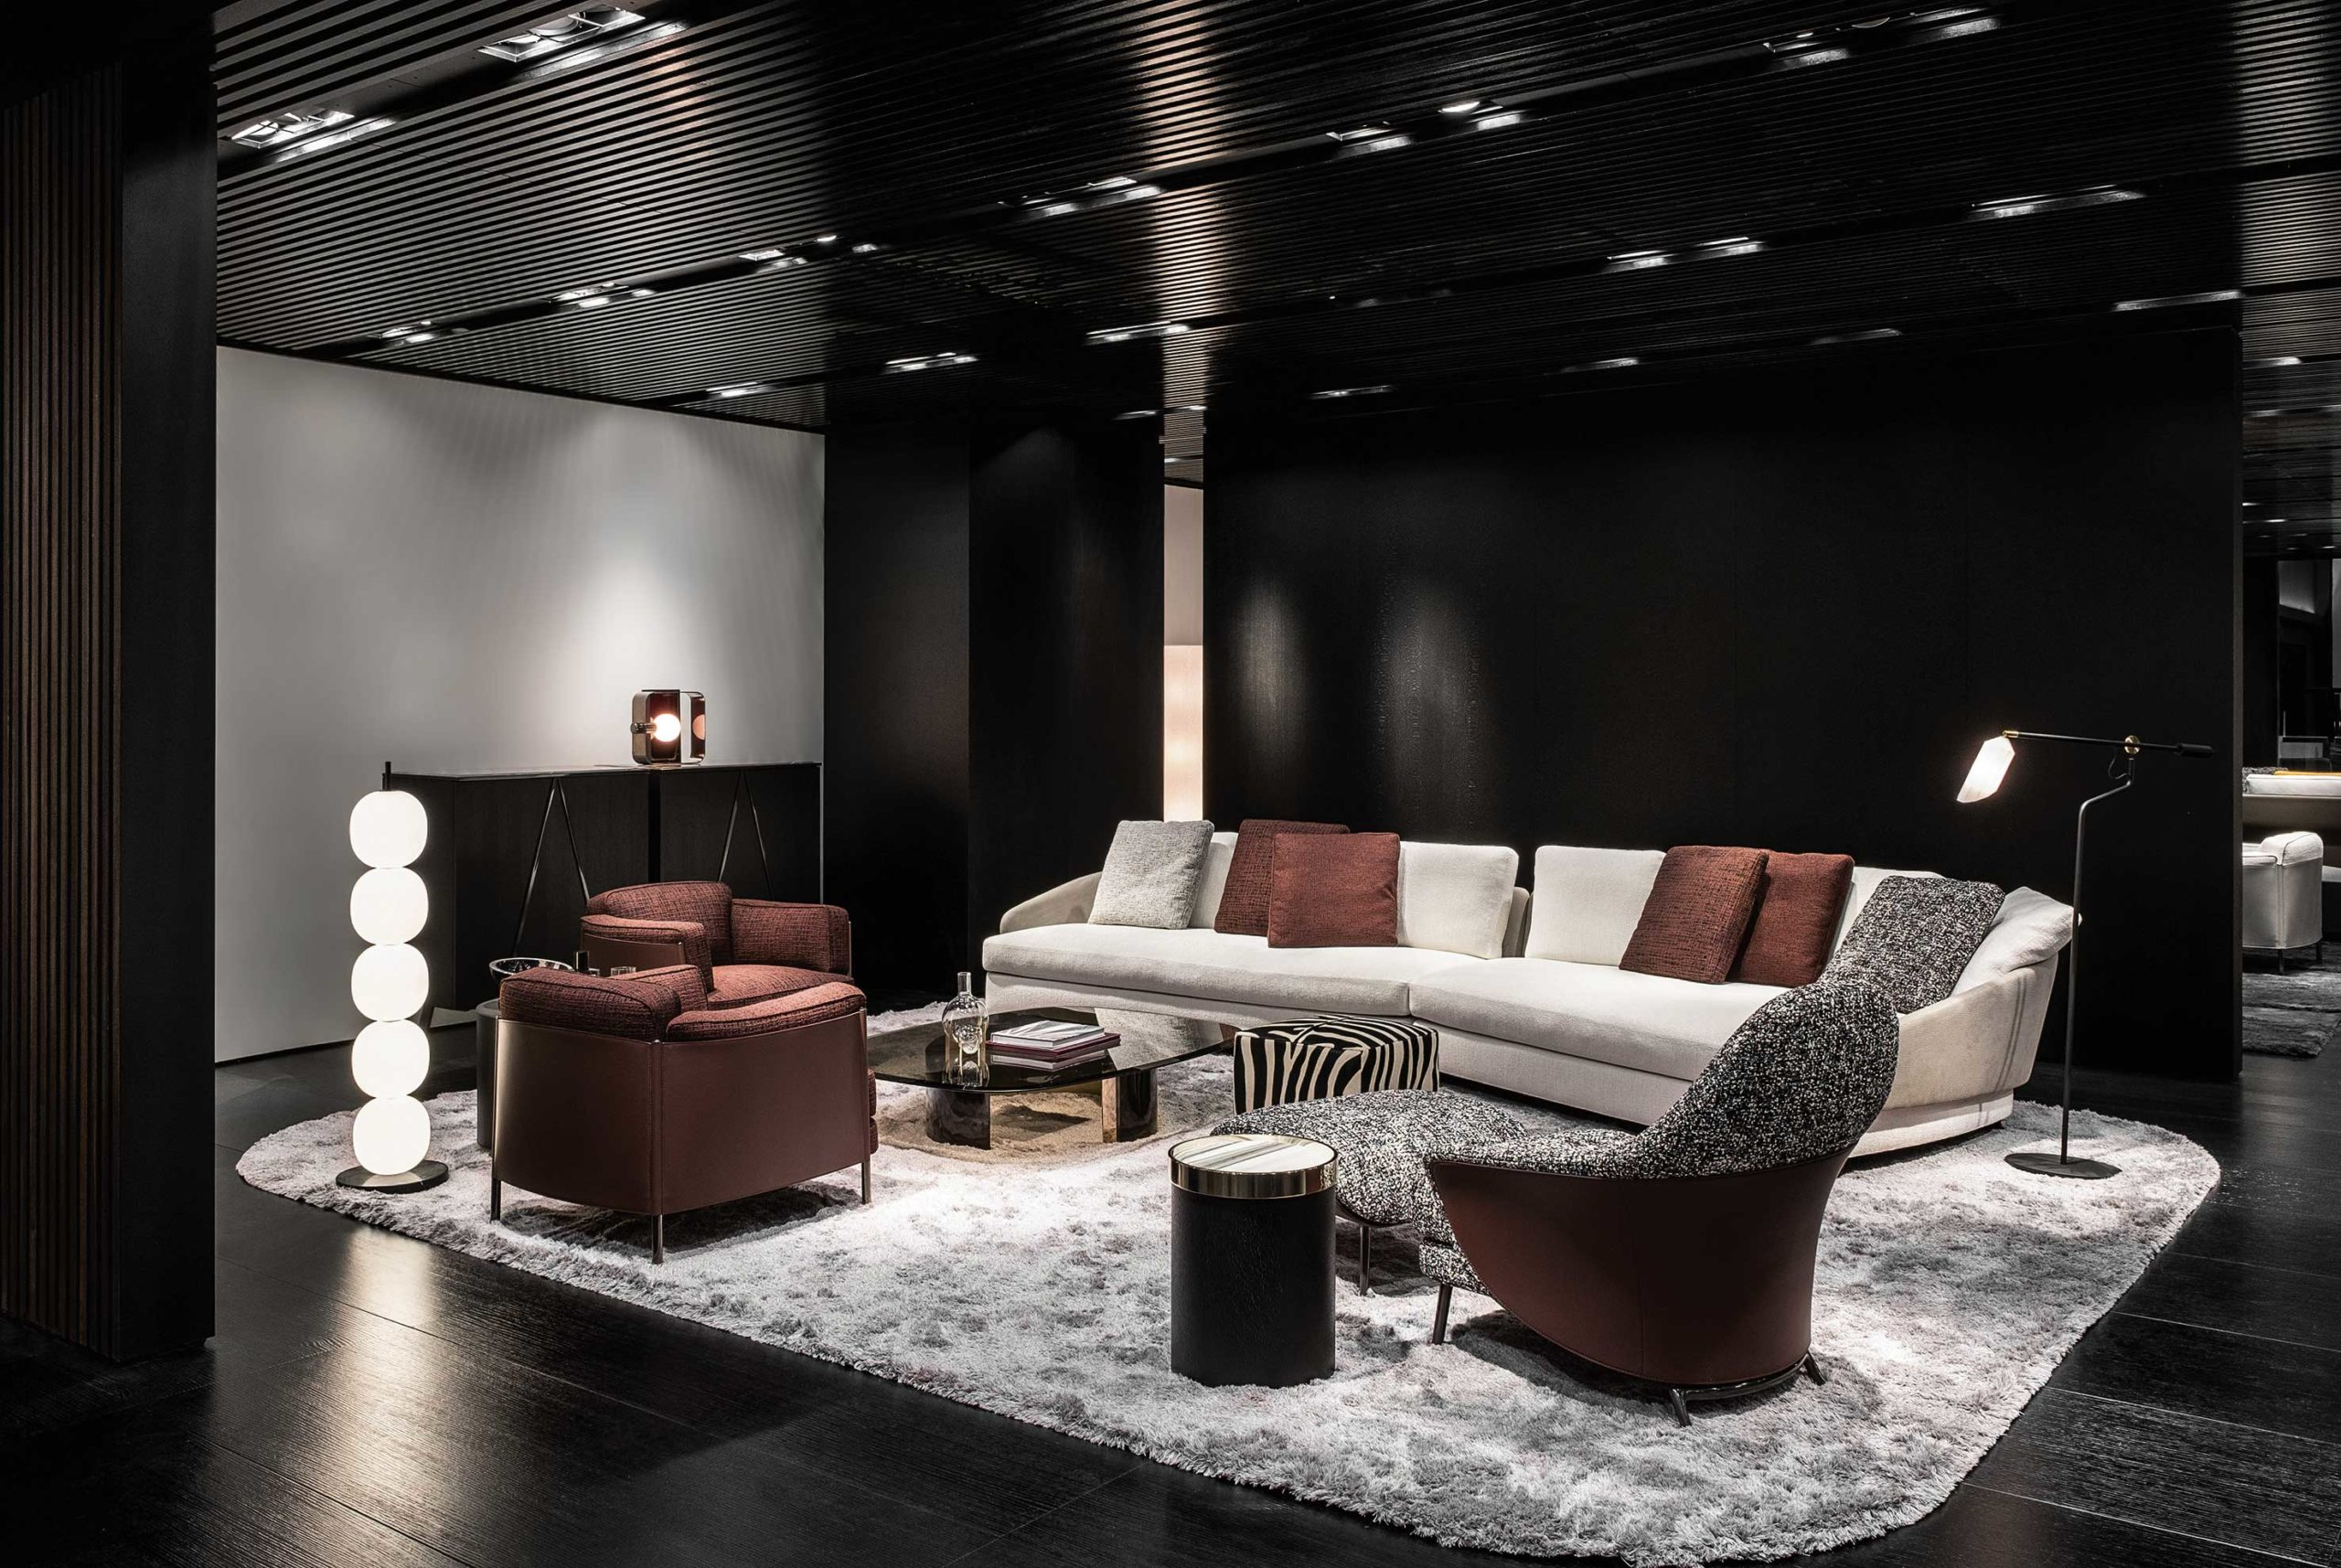 Picture of: Minotti Immcologne 2020 A New Take On The Architectural Language Moie